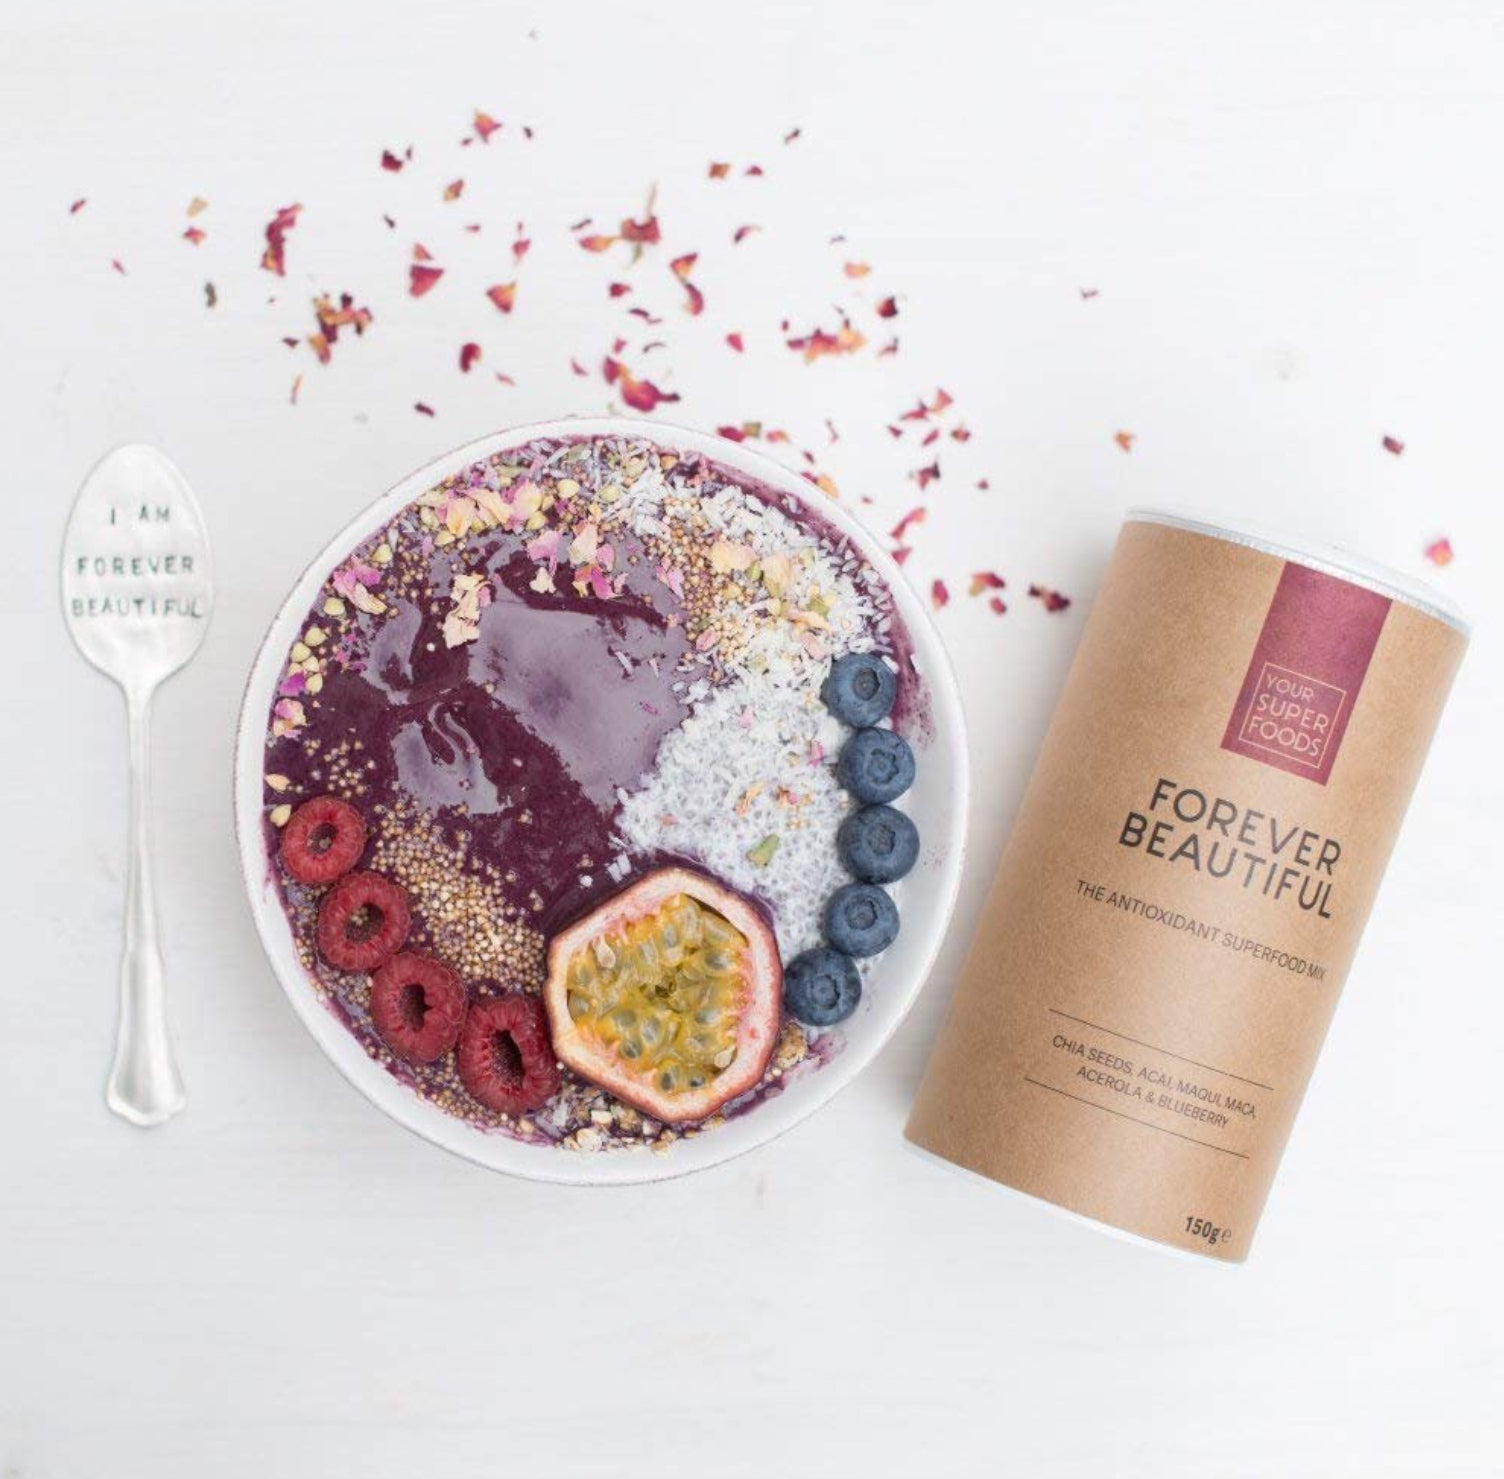 Forever Beautiful Superfood, 150g